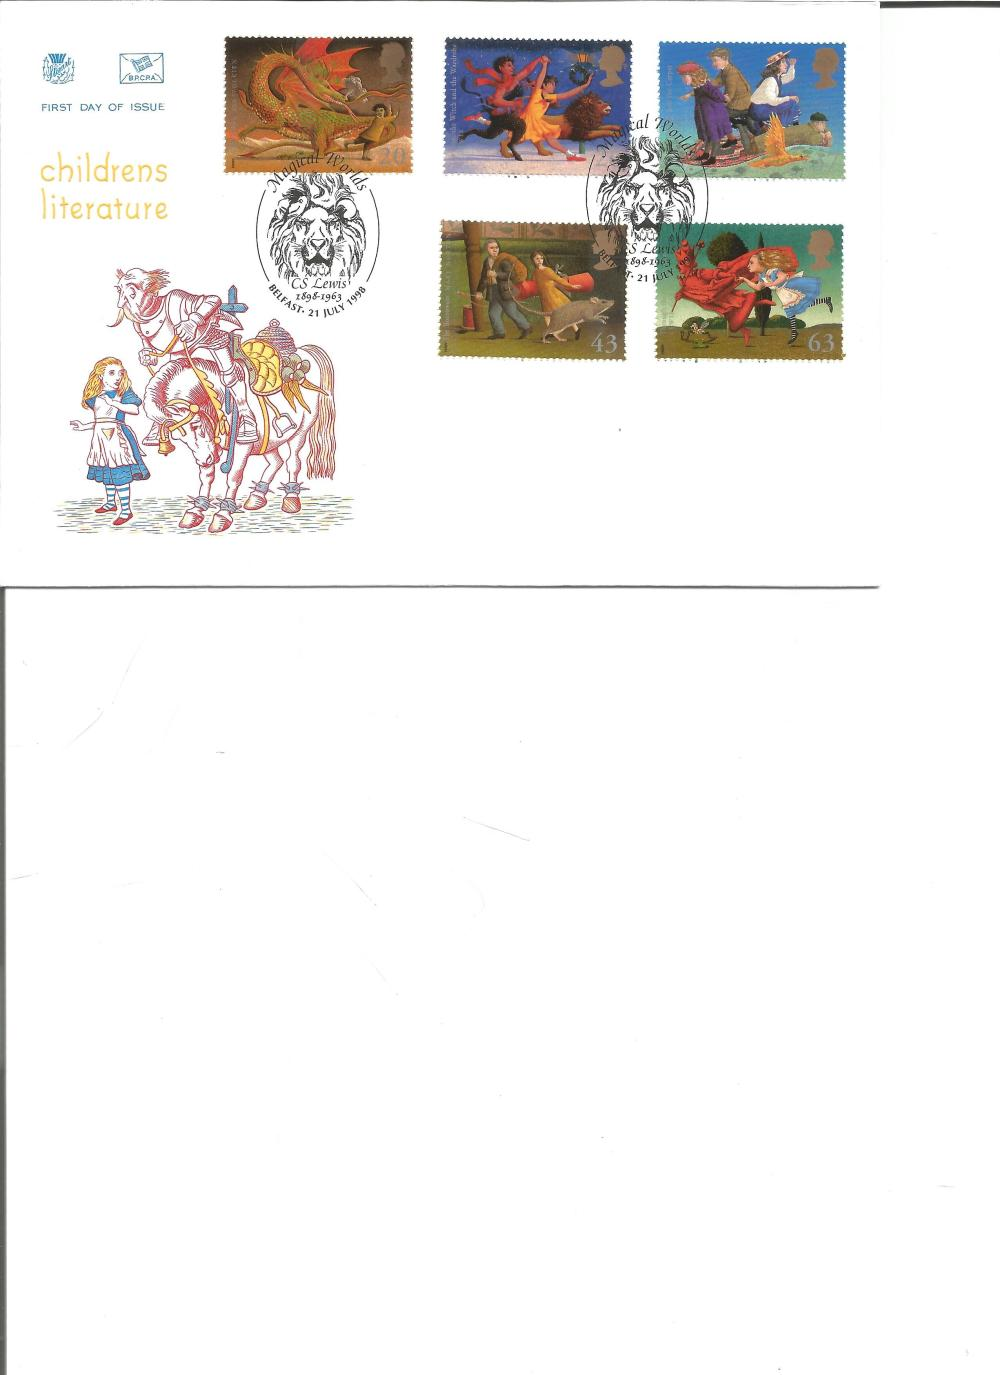 FDC Childrens Literature c/w set of five commemorative stamps double PM Magical Worlds, CS Lewis